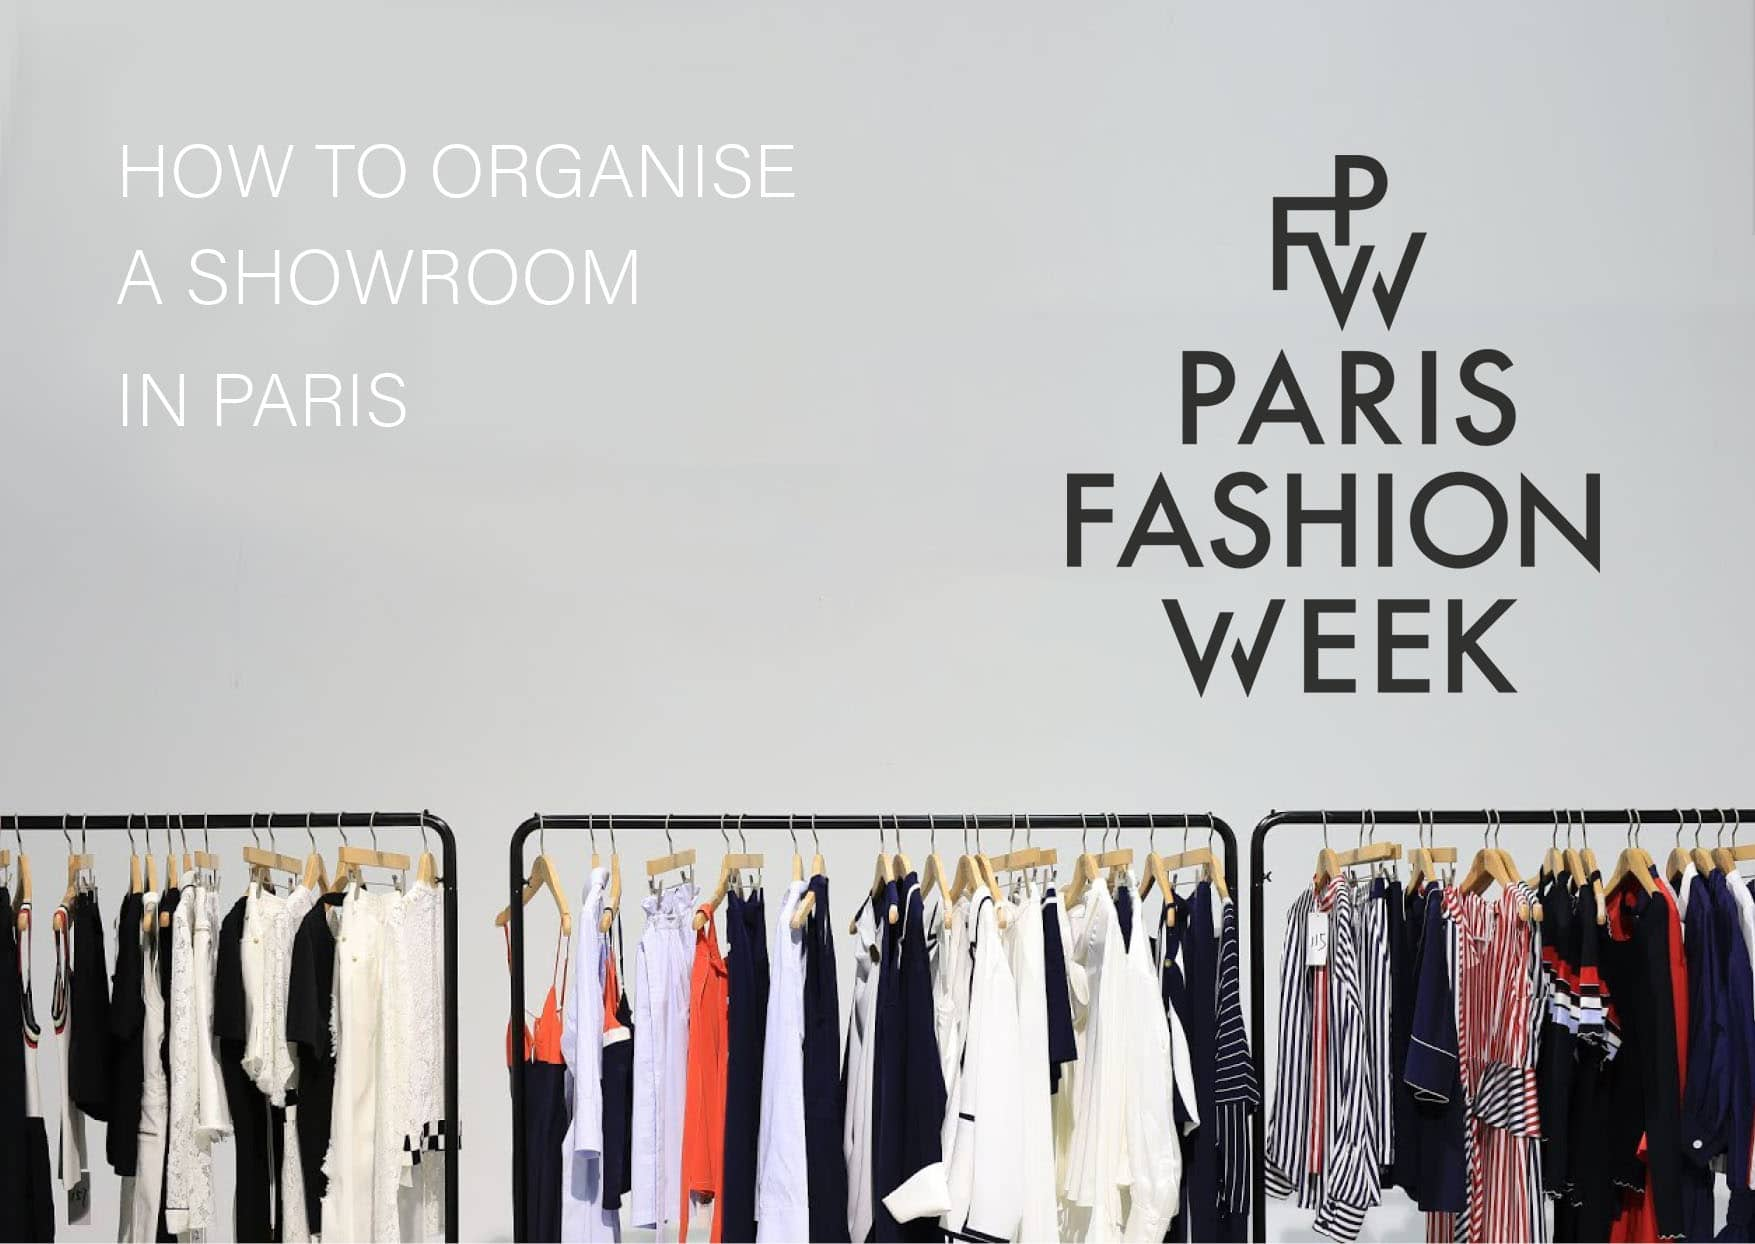 How to organise a showroom in Paris